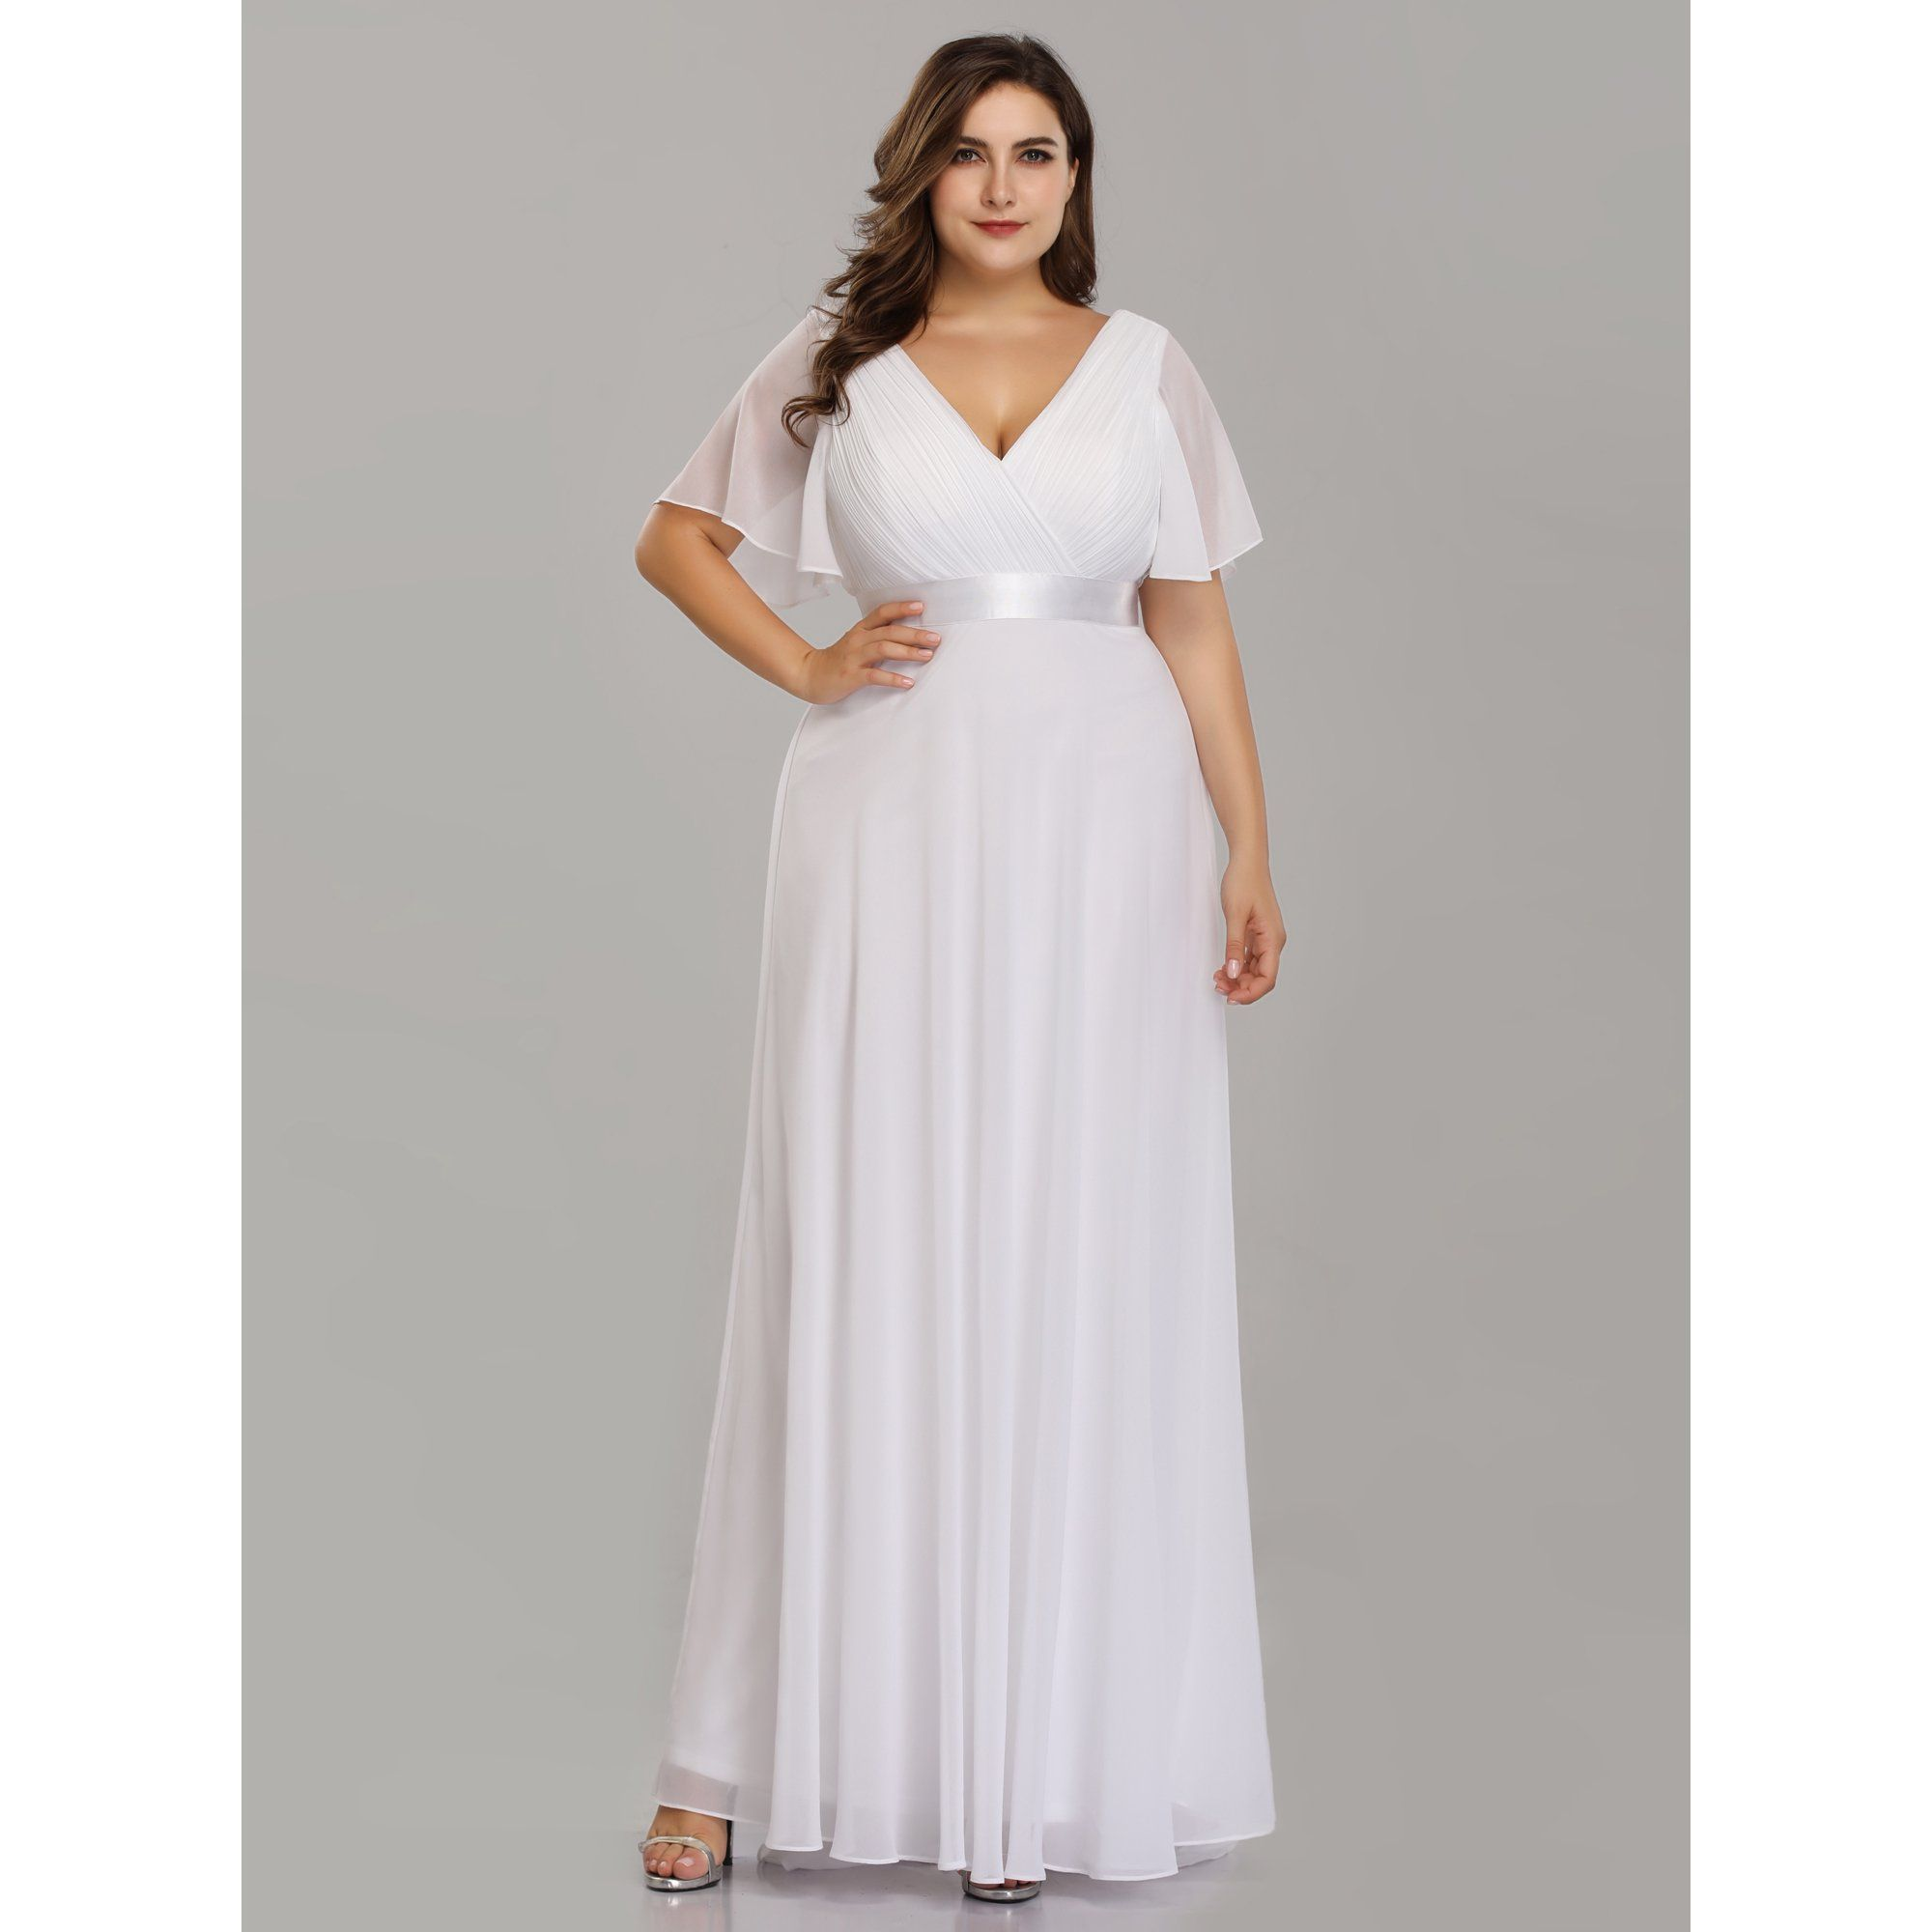 Ever Pretty Ever Pretty Womens Chiffon Holiday Christmas Party Dresses For Women 98902 White Us14 Walmart Com In 2021 White Evening Gowns Empire Waist Evening Dress Chiffon Evening Dresses [ 2000 x 2000 Pixel ]